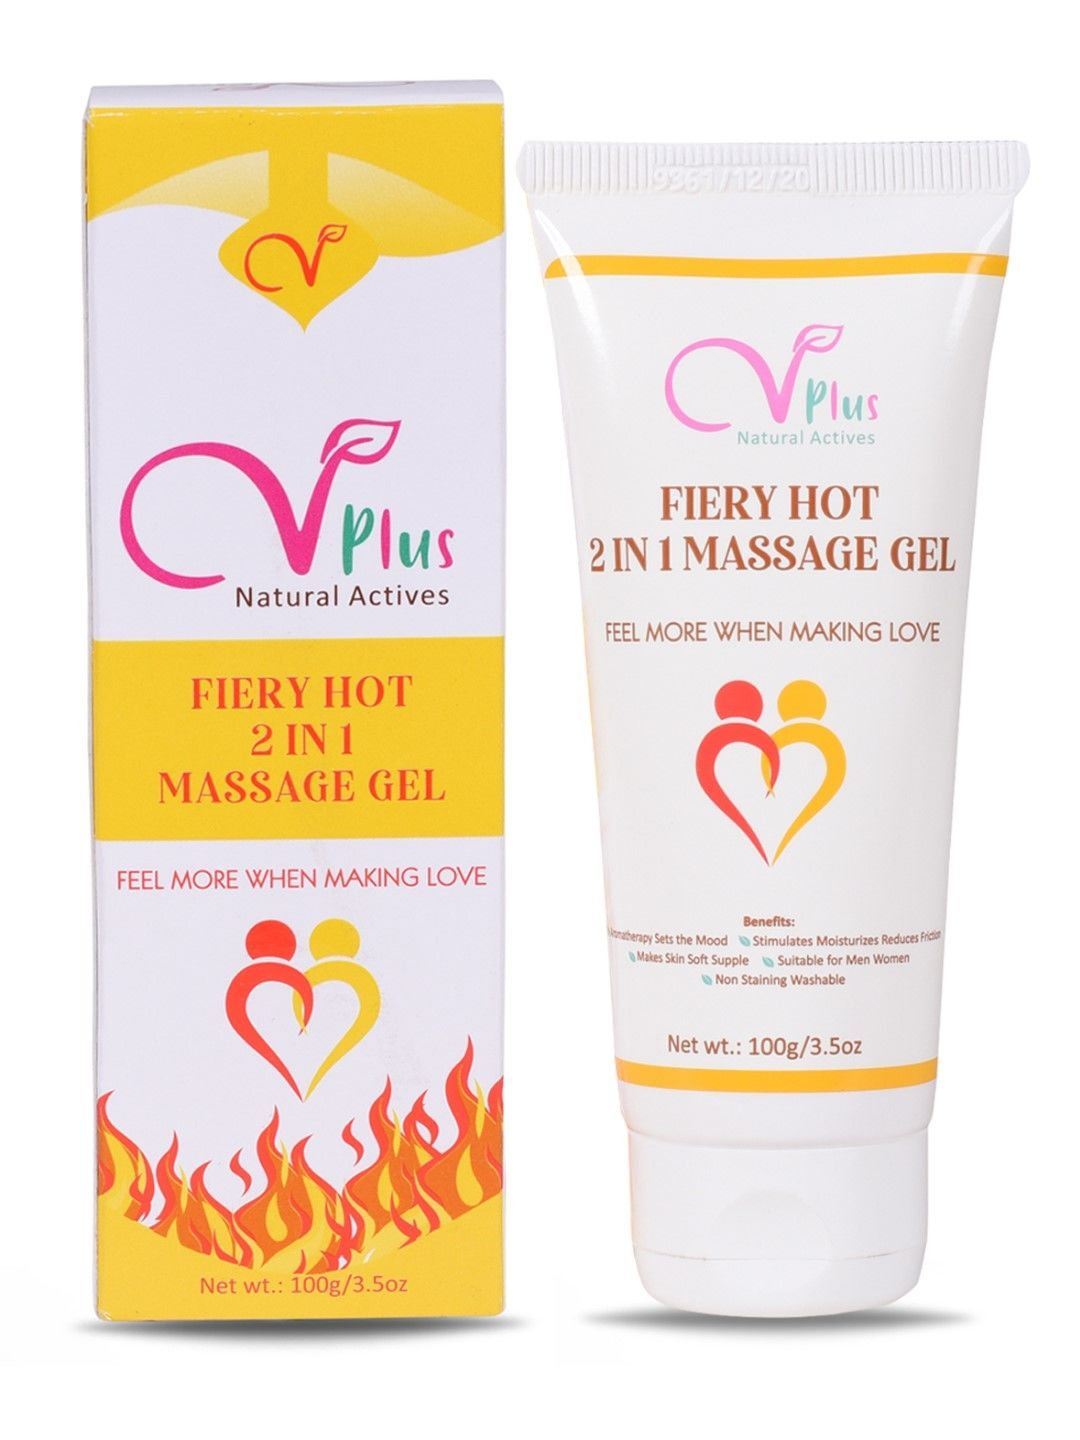 Vigini Plus 100% Natural Actives  Fiery Hot 2 In 1  Aromatherapy Massage Gel Effective Lubricant Lube Jelly Water Based Lubricating Lubrication for Men Women